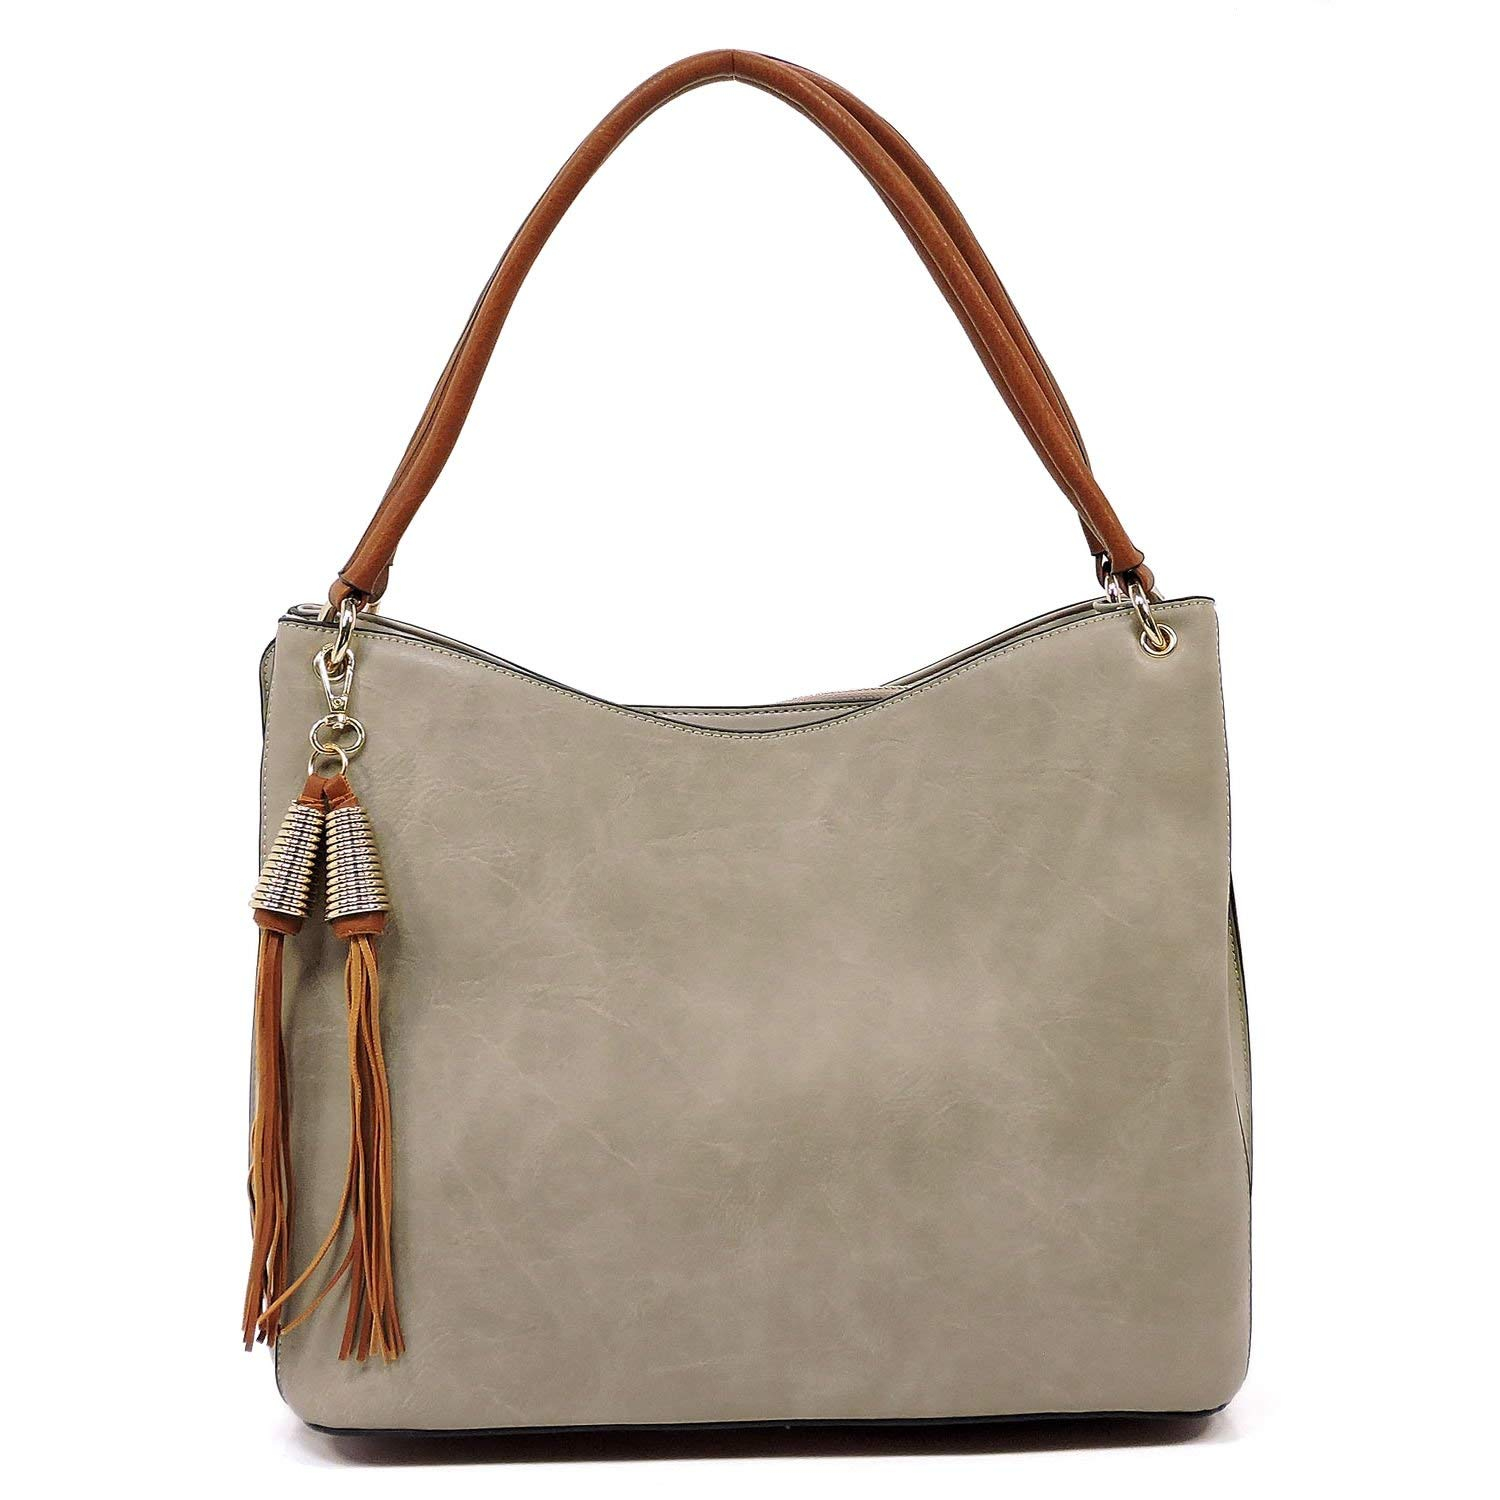 608efb0b953a Get Quotations · Easy carrying light weight soft vegan faux leather  shoulder handbag with crossbody shoulder strap